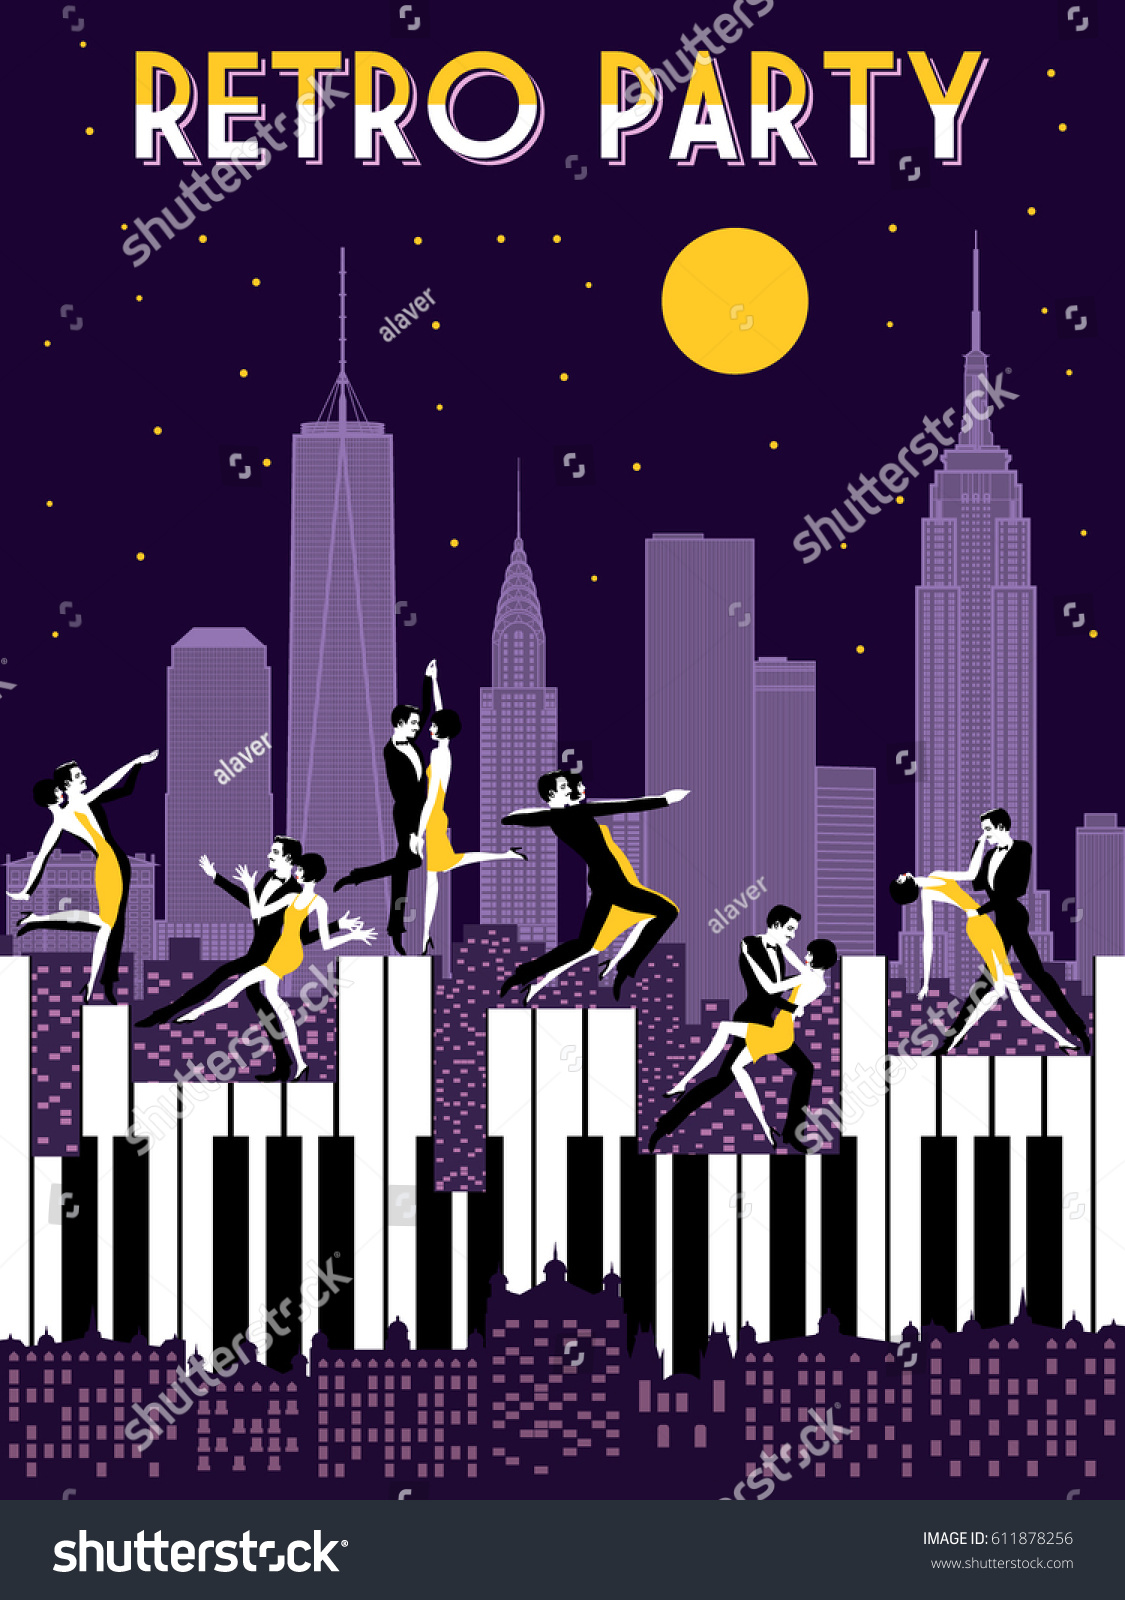 Stock Vector Six Dancing Couples Dancing On Piano Retro Party Hand Drawing Invitation Card Art Deco Style on Foxtrot Clothing